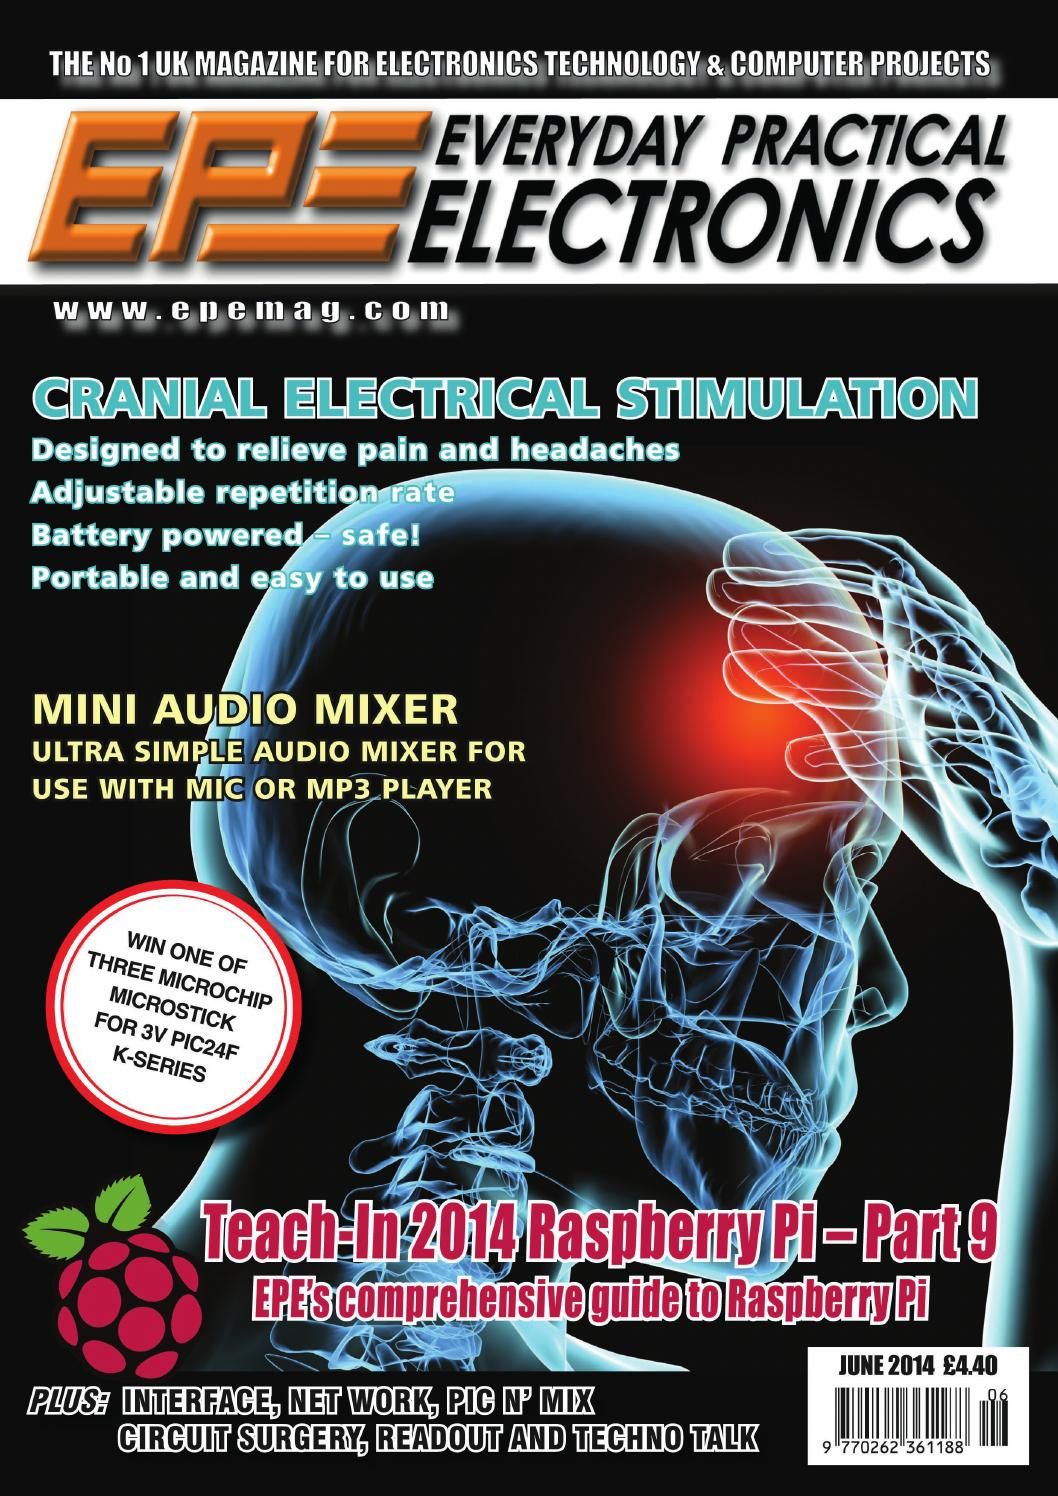 Everyday Practical Electronics 2014 06 By Yurgen Issuu Gate Tone Generator Ic 4011 Electronic Projects Circuits